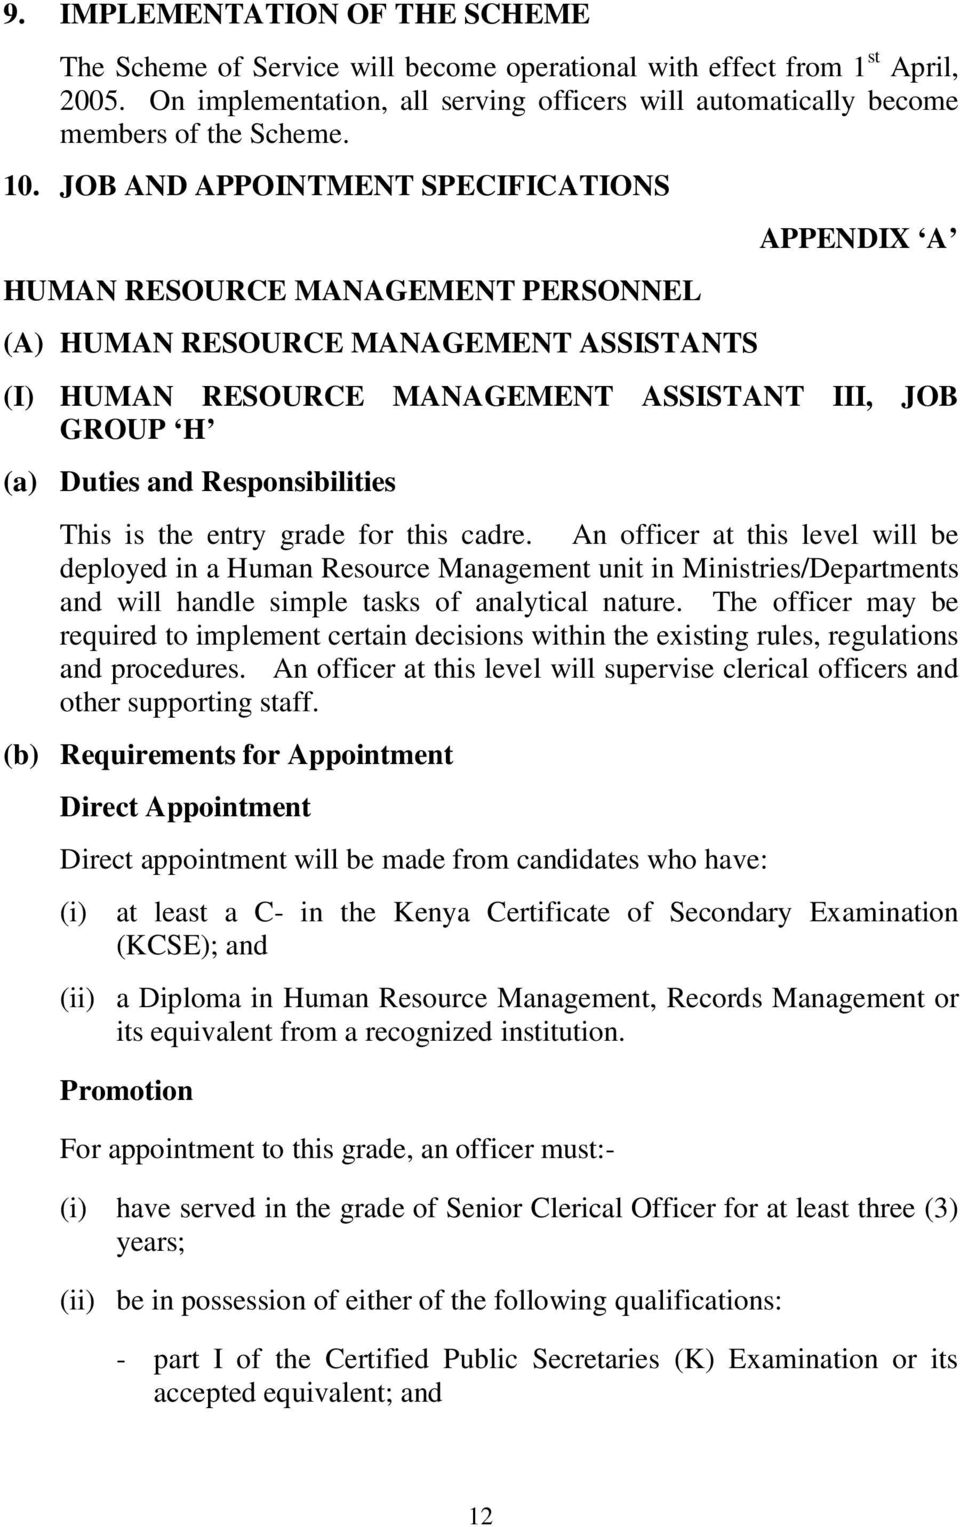 JOB AND APPOINTMENT SPECIFICATIONS HUMAN RESOURCE MANAGEMENT PERSONNEL (A) HUMAN RESOURCE MANAGEMENT ASSISTANTS APPENDIX A (I) HUMAN RESOURCE MANAGEMENT ASSISTANT III, JOB GROUP H This is the entry